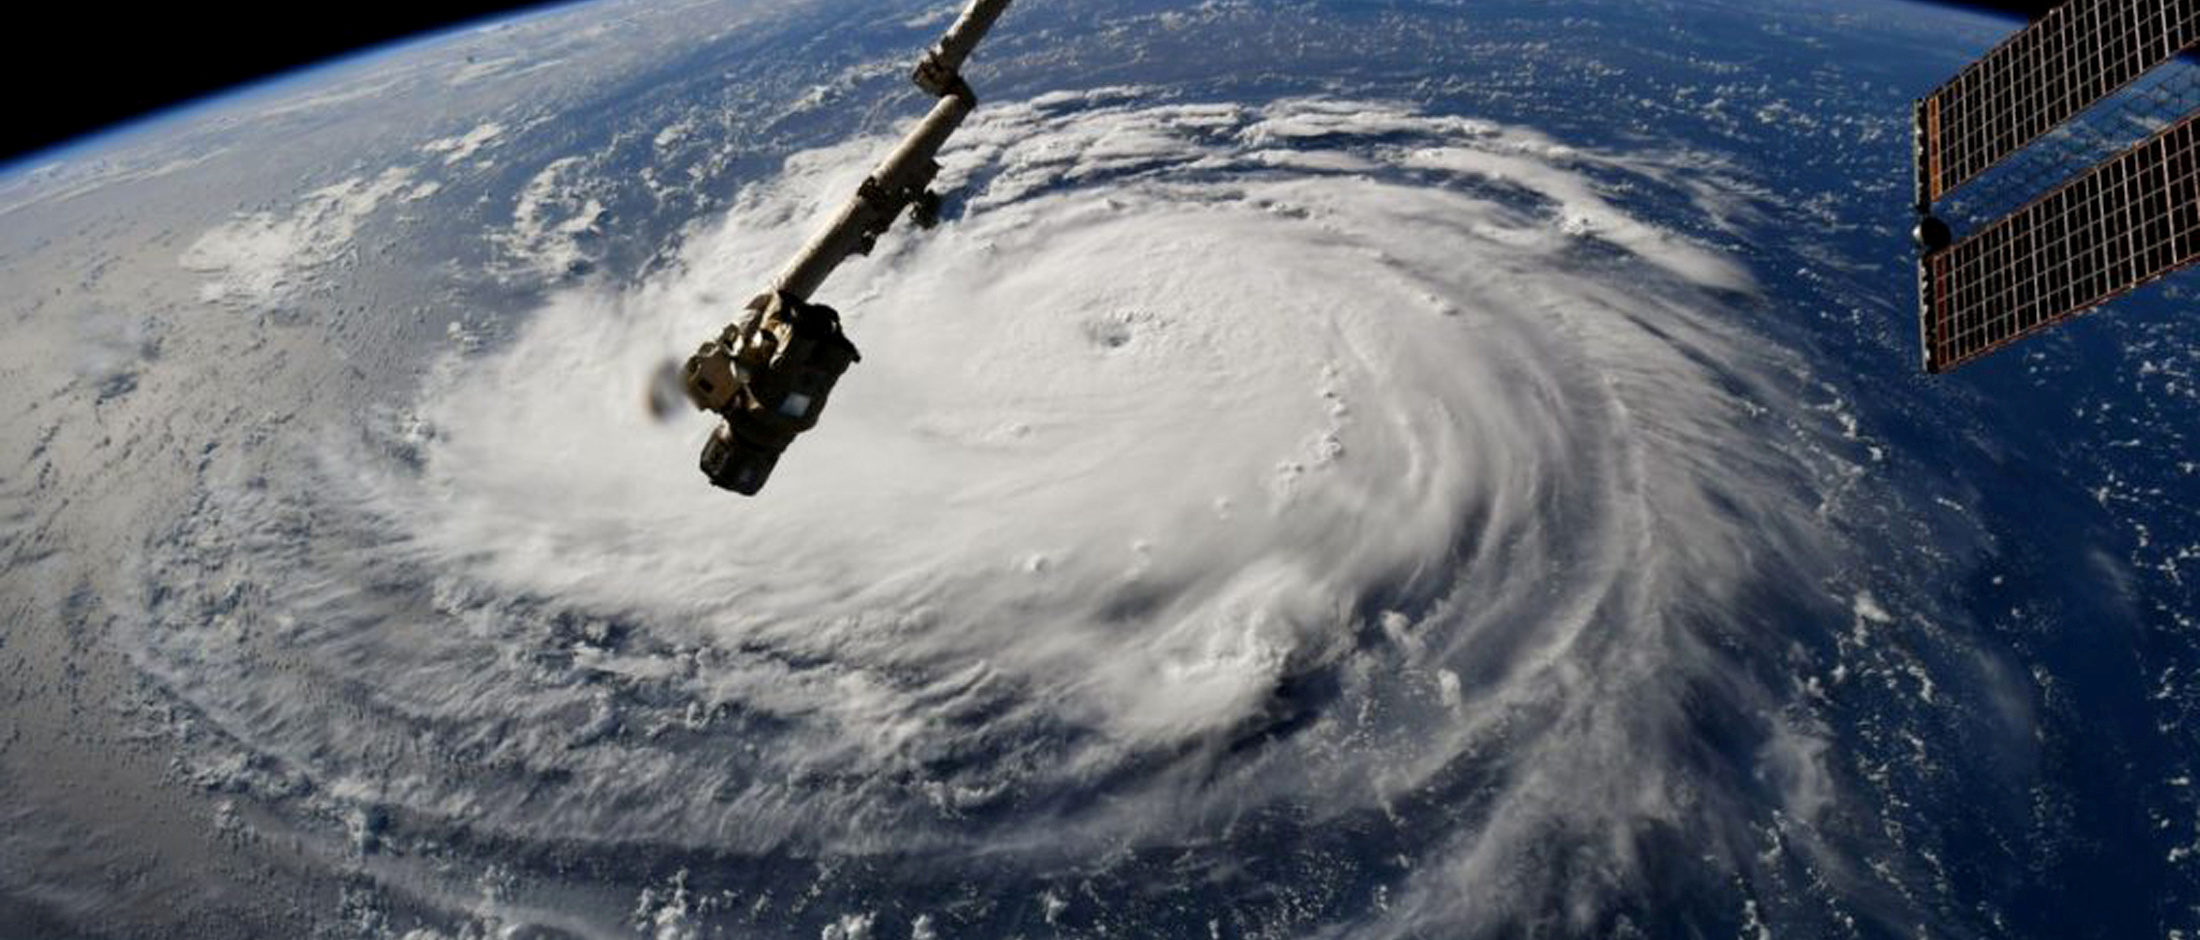 dailycaller.com - Scientists Throw Cold Water On Claims Linking Hurricane Florence To Global Warming